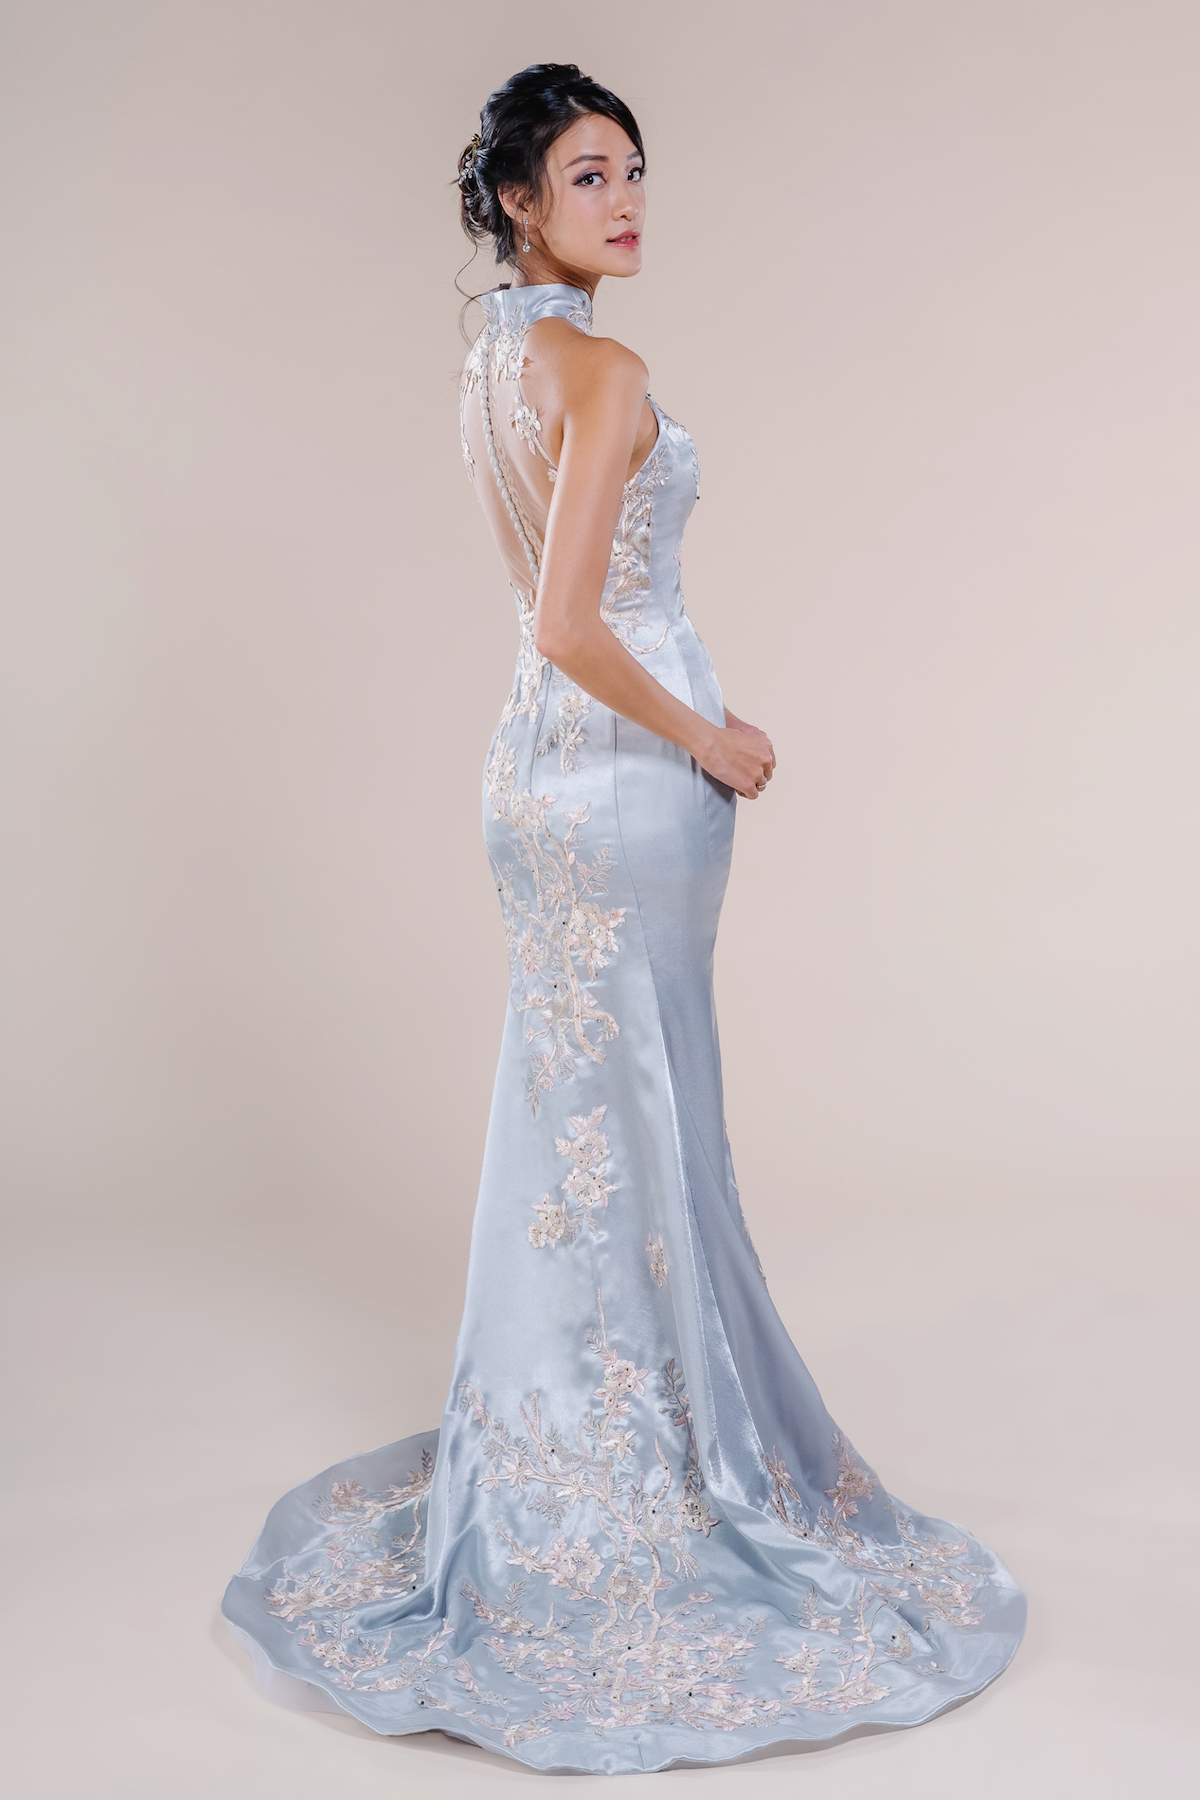 Denise-affordable Wedding Cheongsam for rent in Singapore